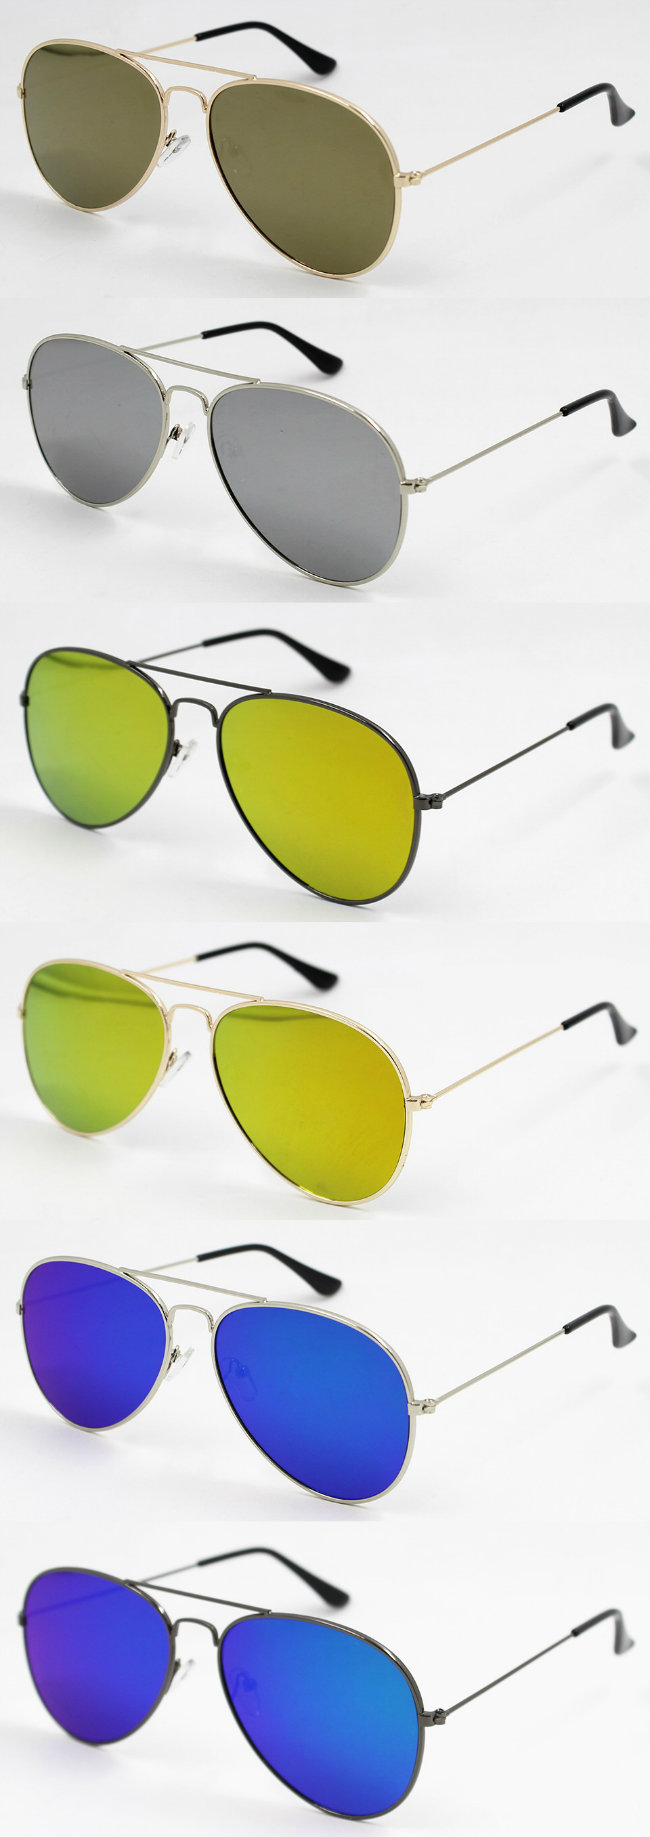 2016 New Metal Sunglasses with Flat Lens (MI160223)